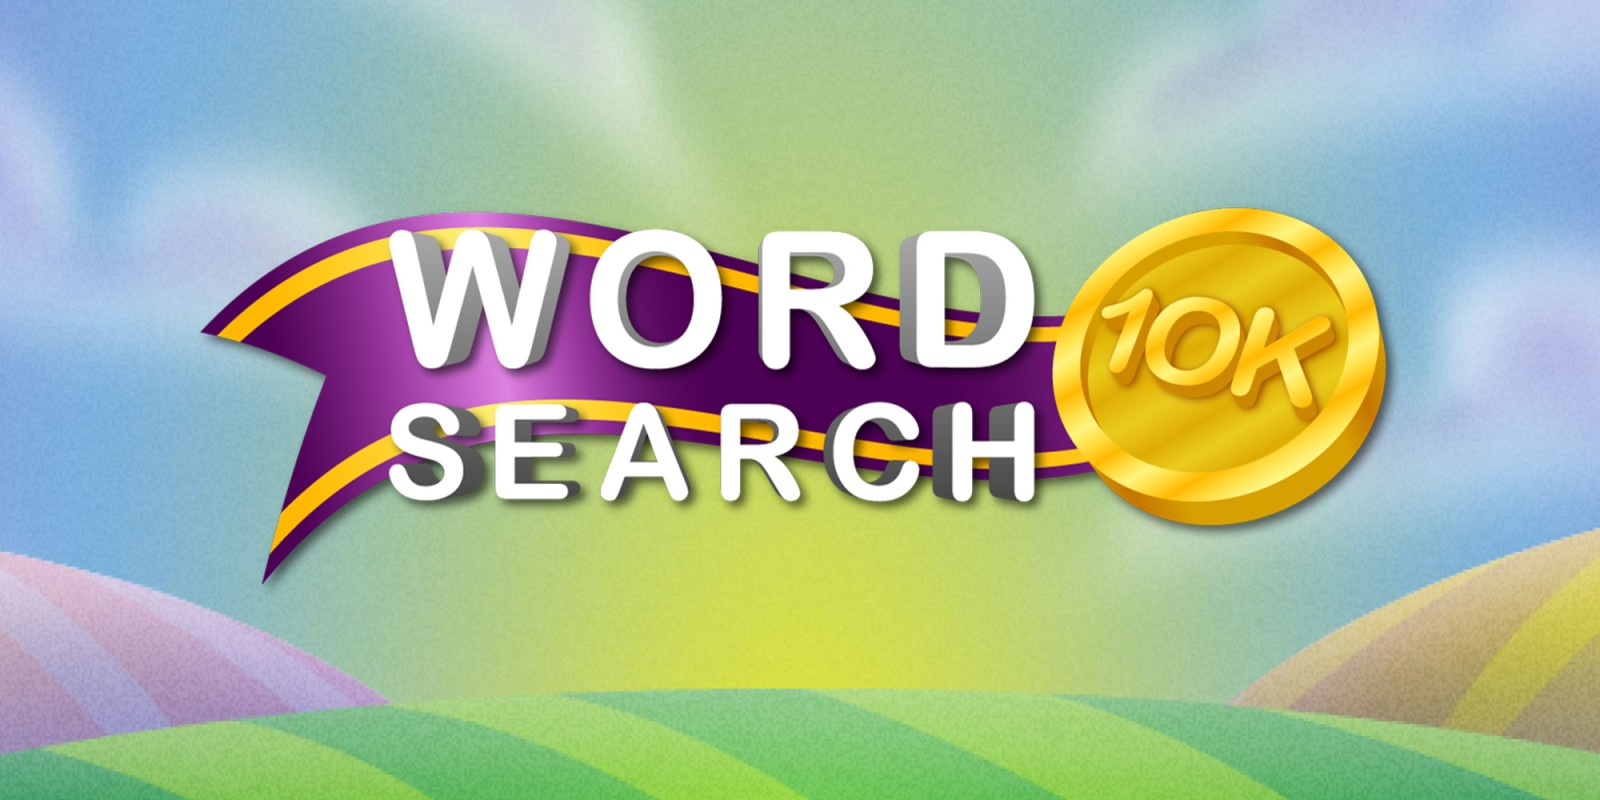 Word Search 10K